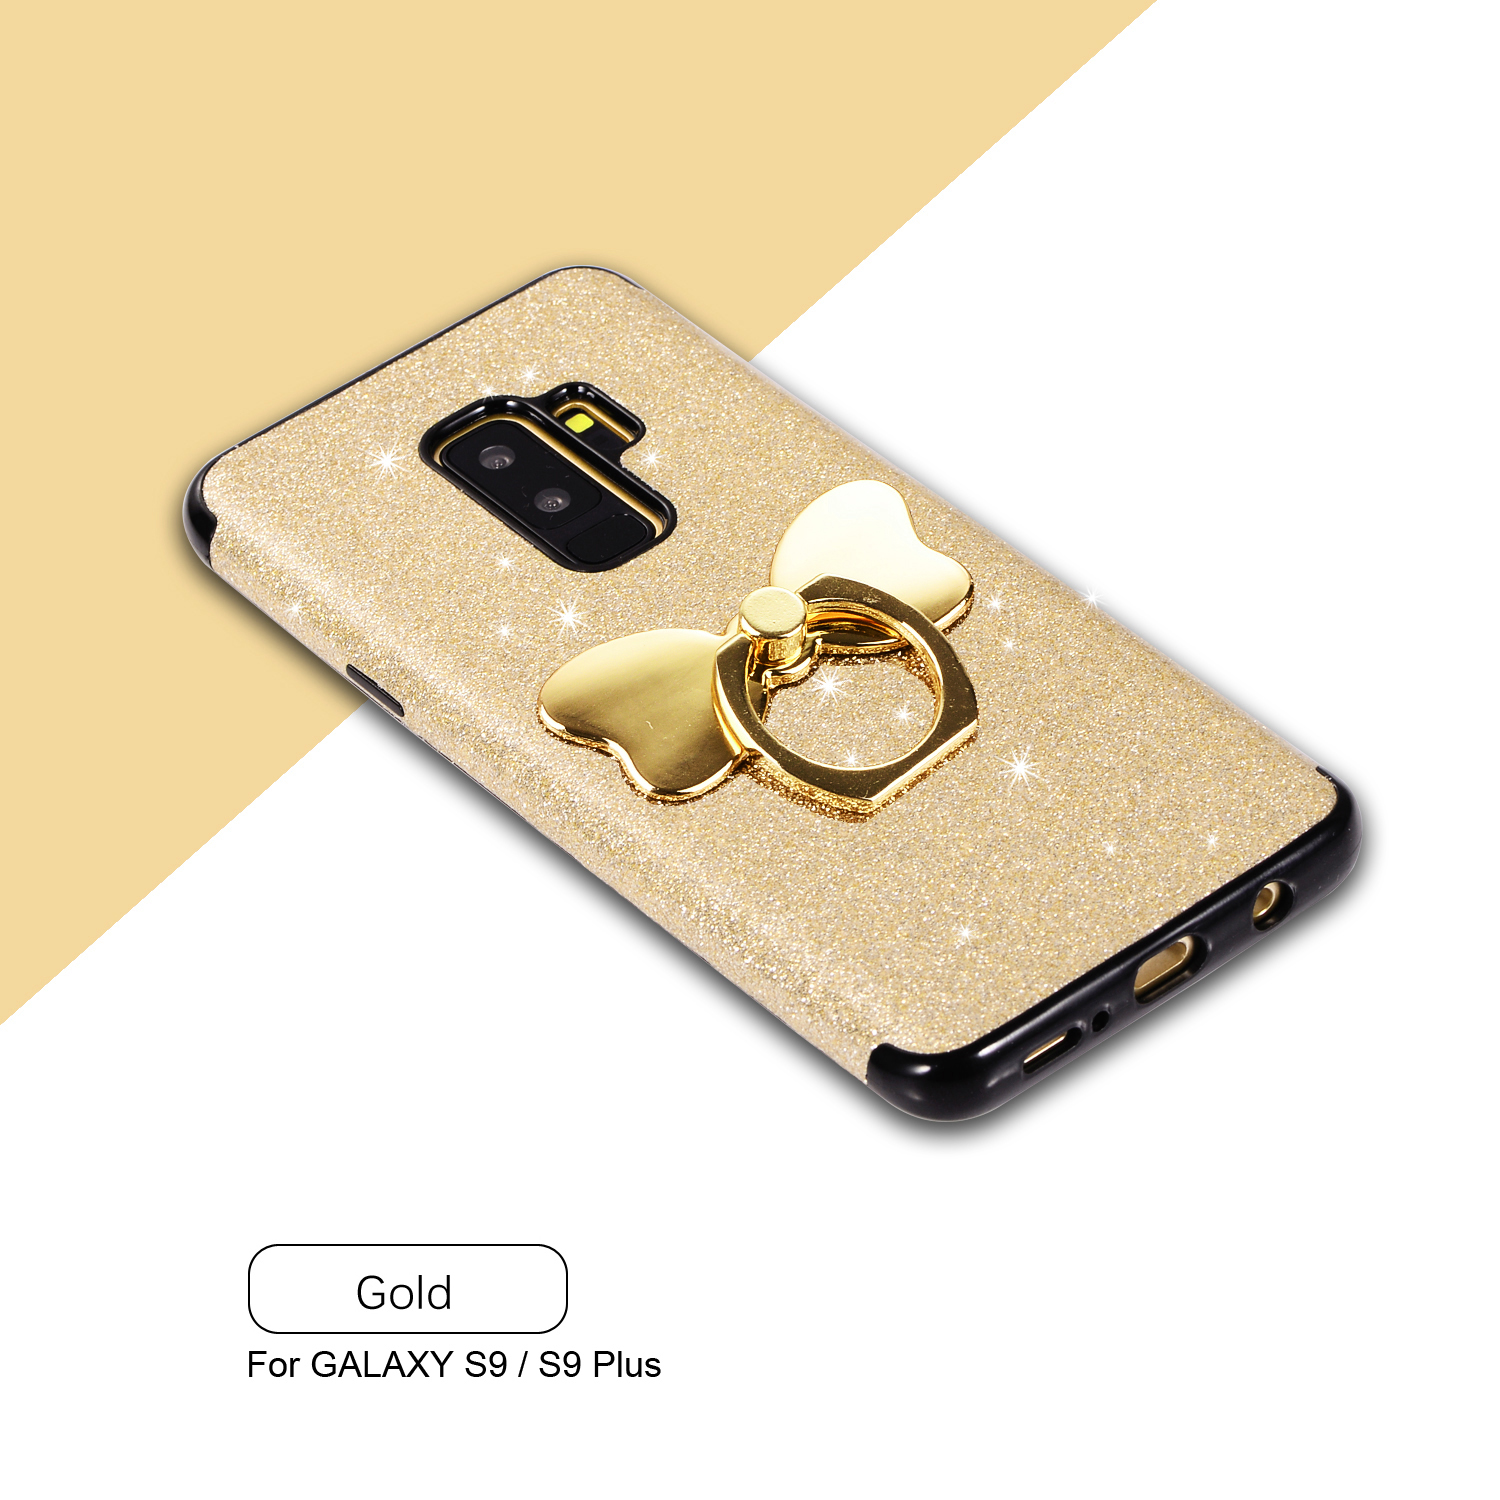 Details About Shiny Tpu Phone Case Cover With Finger Ring Grip Holder For Samsung S10plus S9